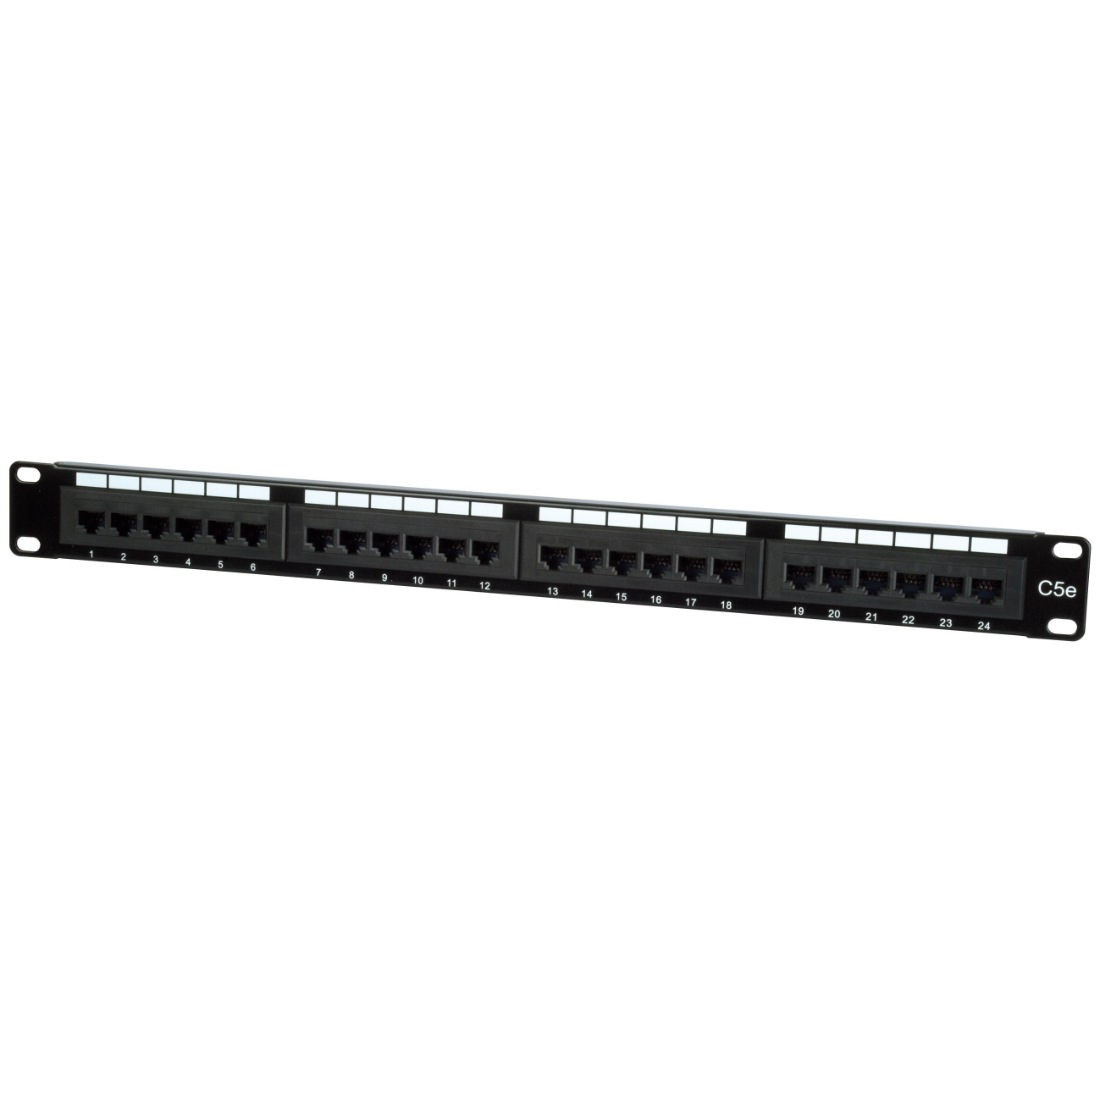 philex 19 u0026quot  1u 24-port utp cat5e patch panel